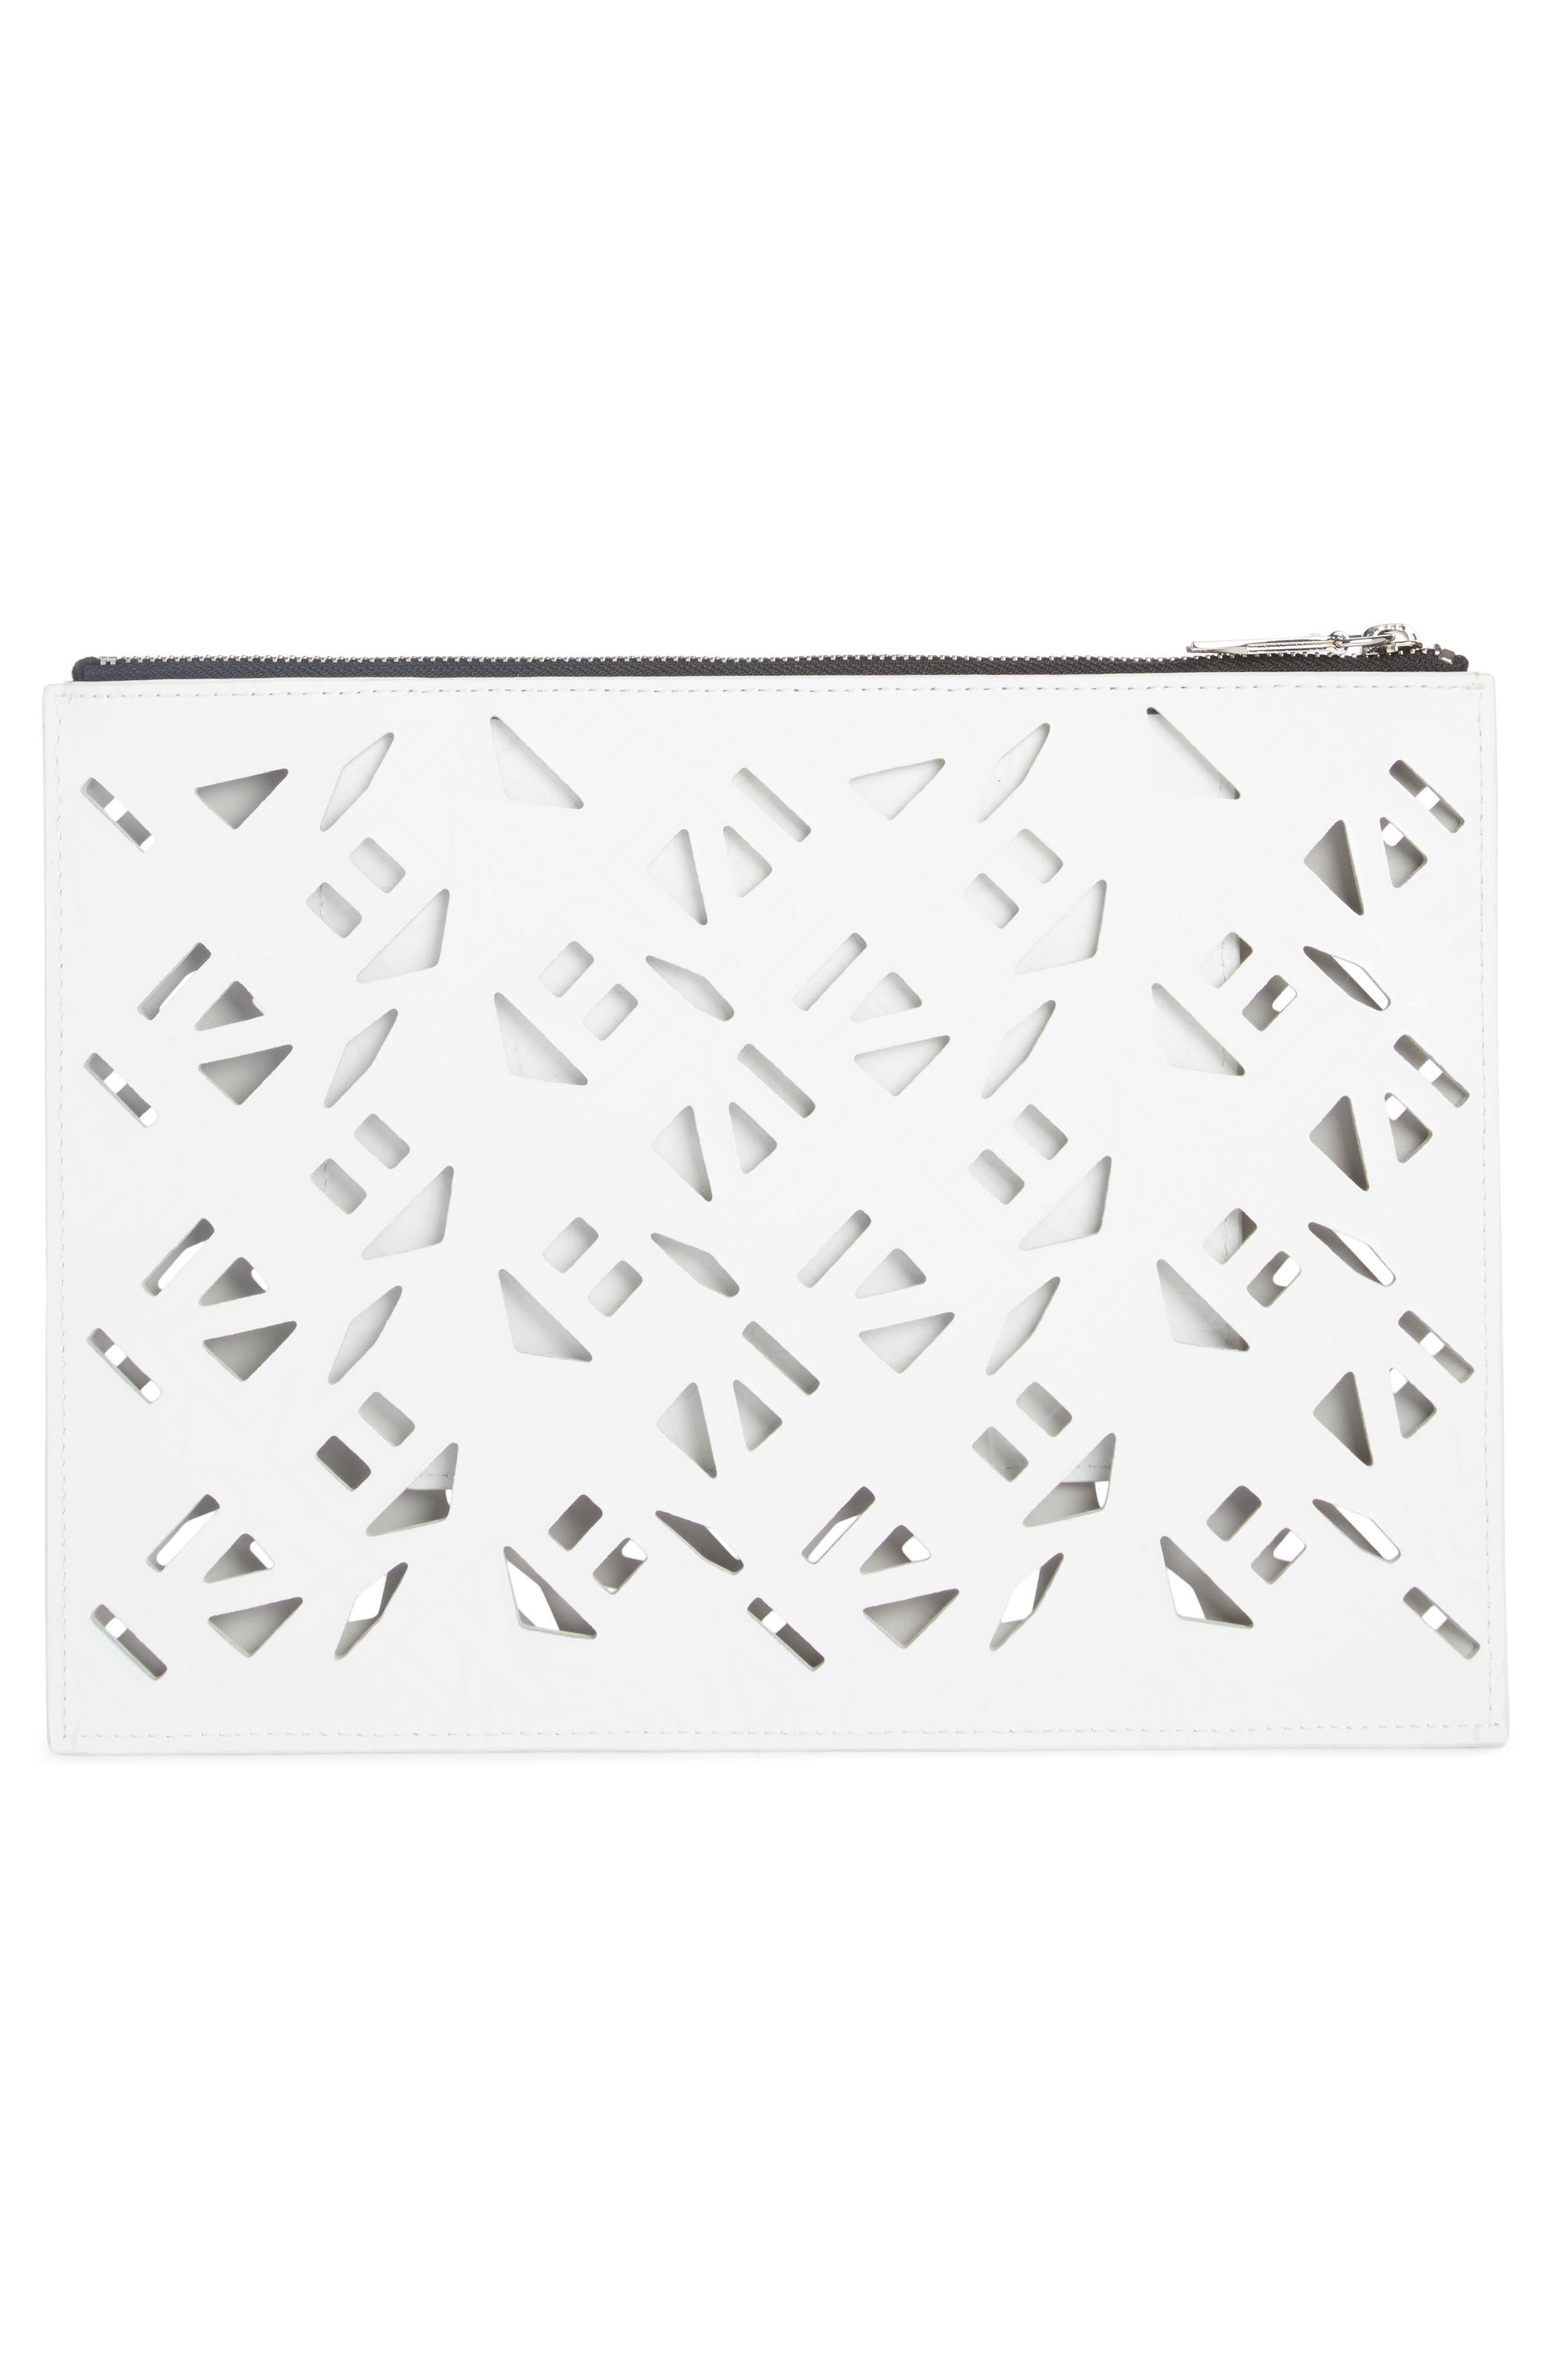 Art Gummy Perforated Leather A4 Pouch,                             Alternate thumbnail 2, color,